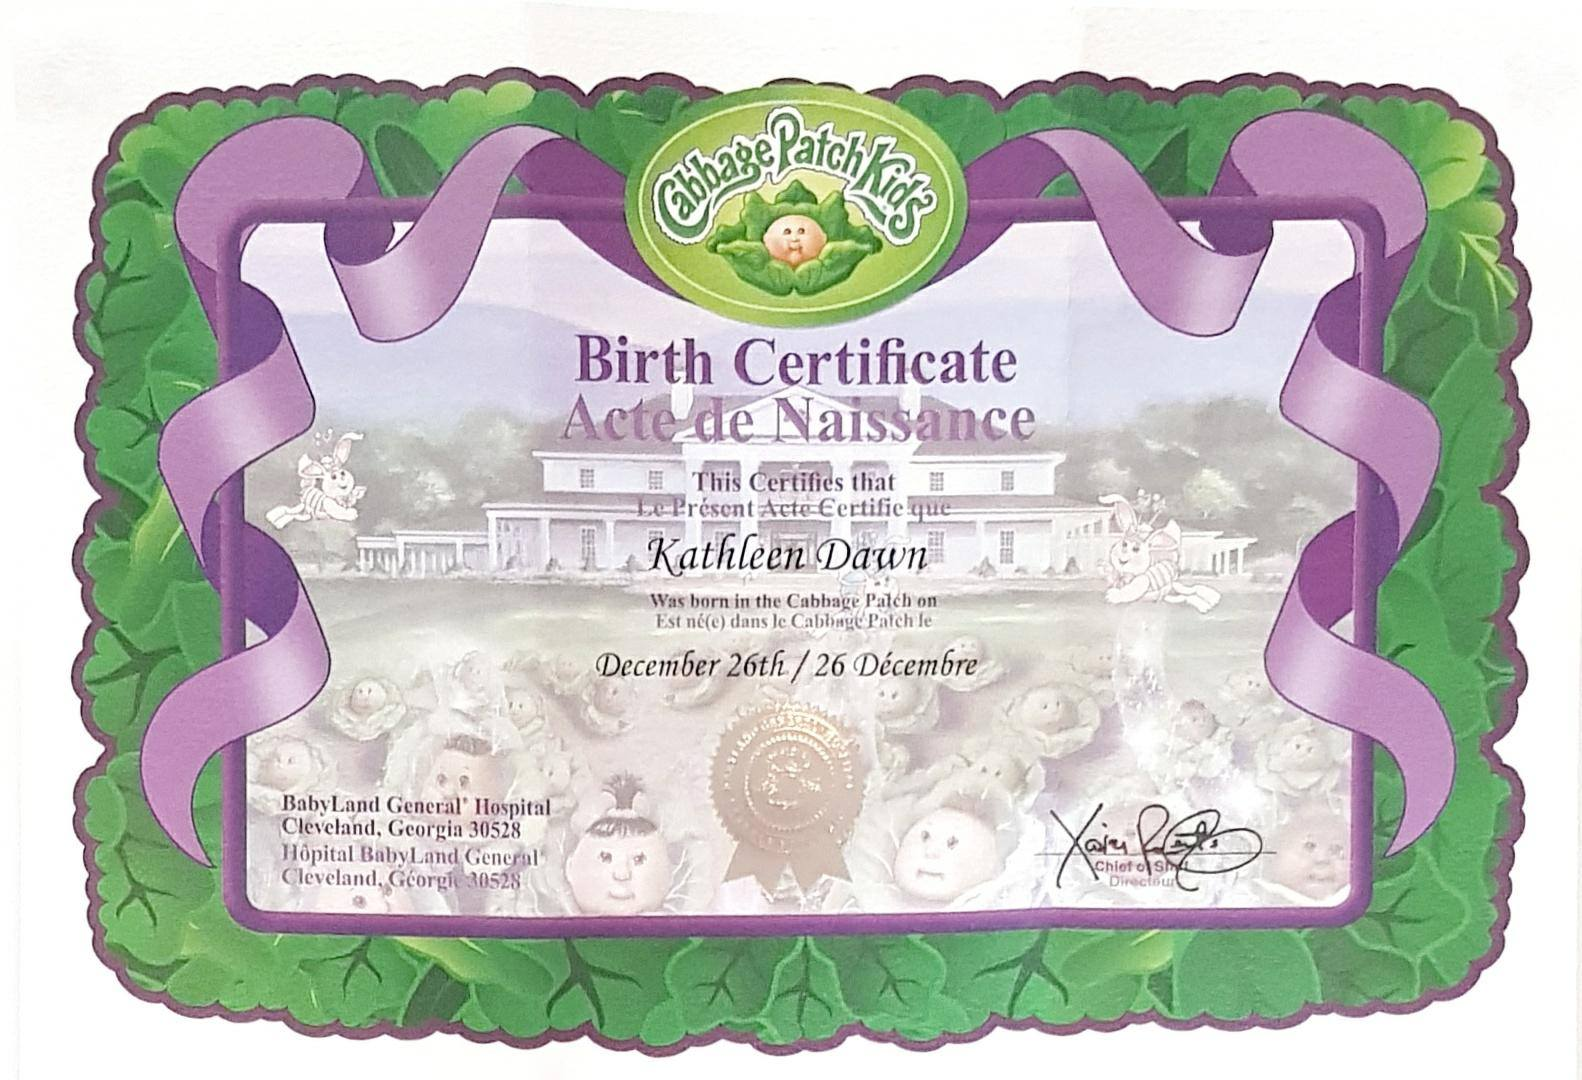 cabbage patch kid birth certificate template - finding myself young